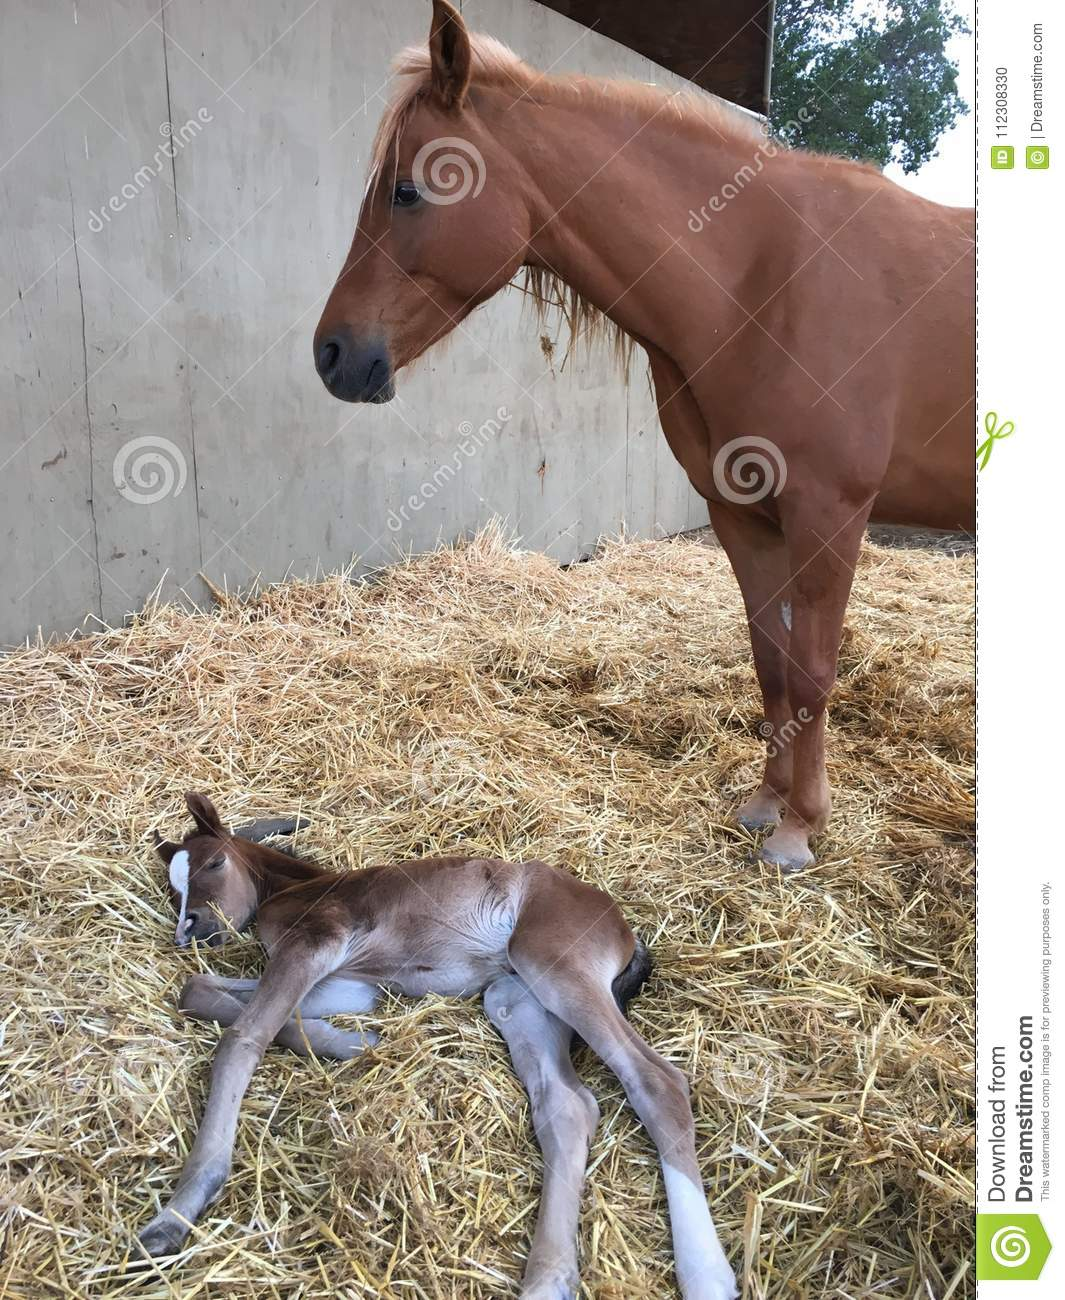 Newborn Filly And Mom Standing Guard Beautiful Baby Horse And Chestnut Color Mom Stock Photo Image Of Brown Horse 112308330